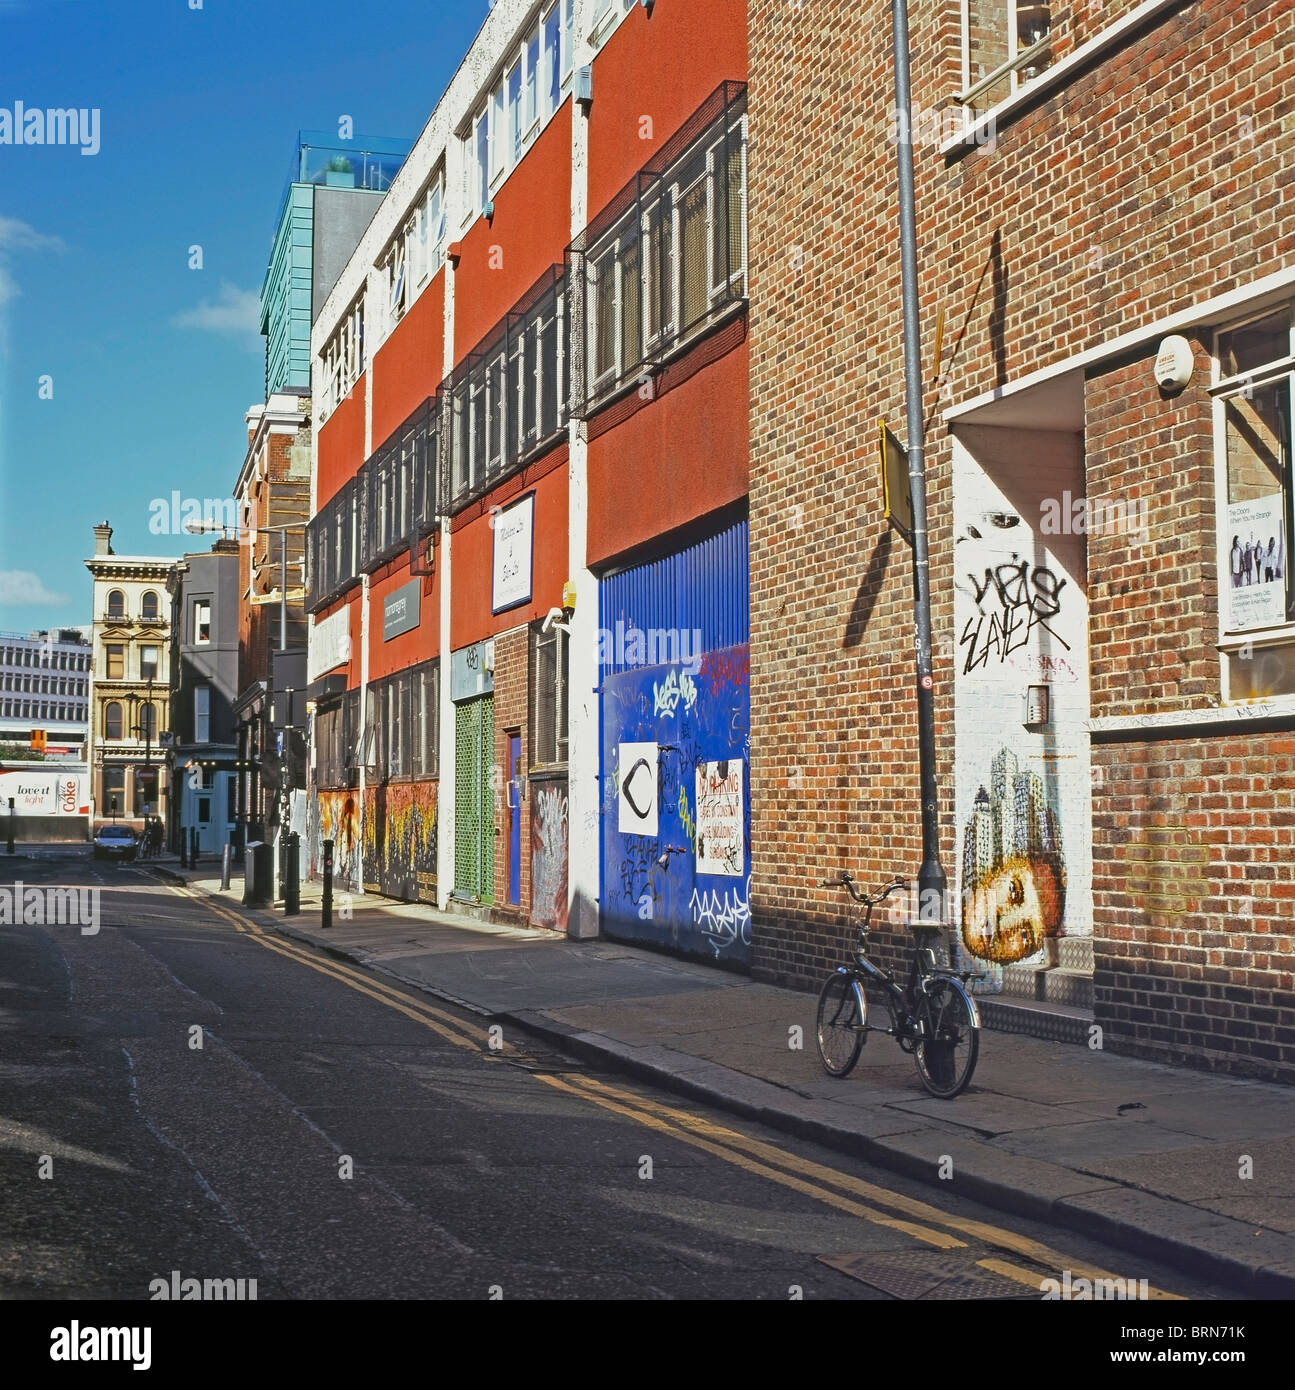 An empty street with warehouses in Shoreditch, East London England UK KATHY DEWITT - Stock Image